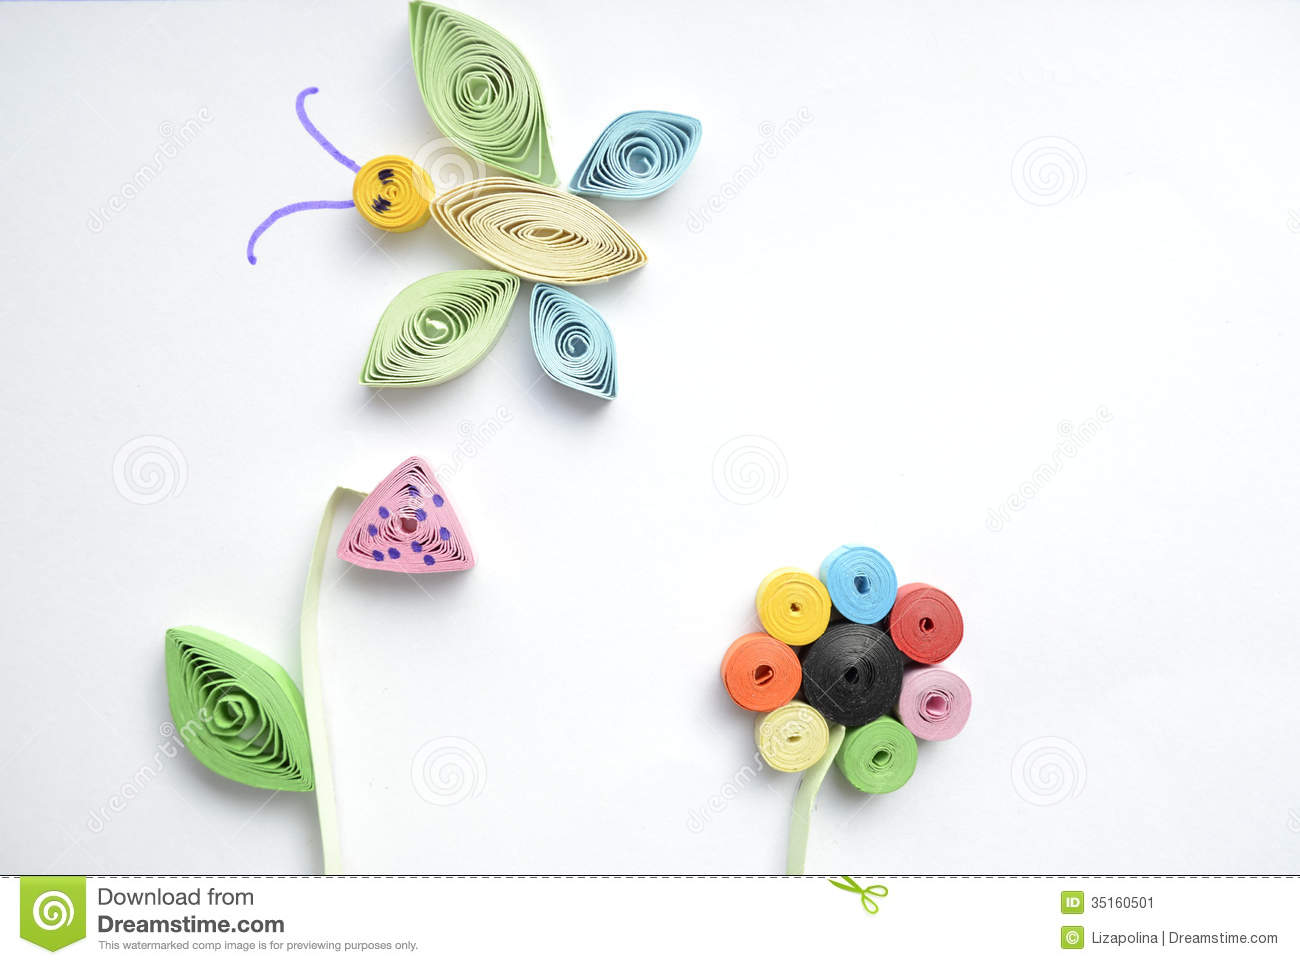 HD wallpapers thank you craft ideas for kids